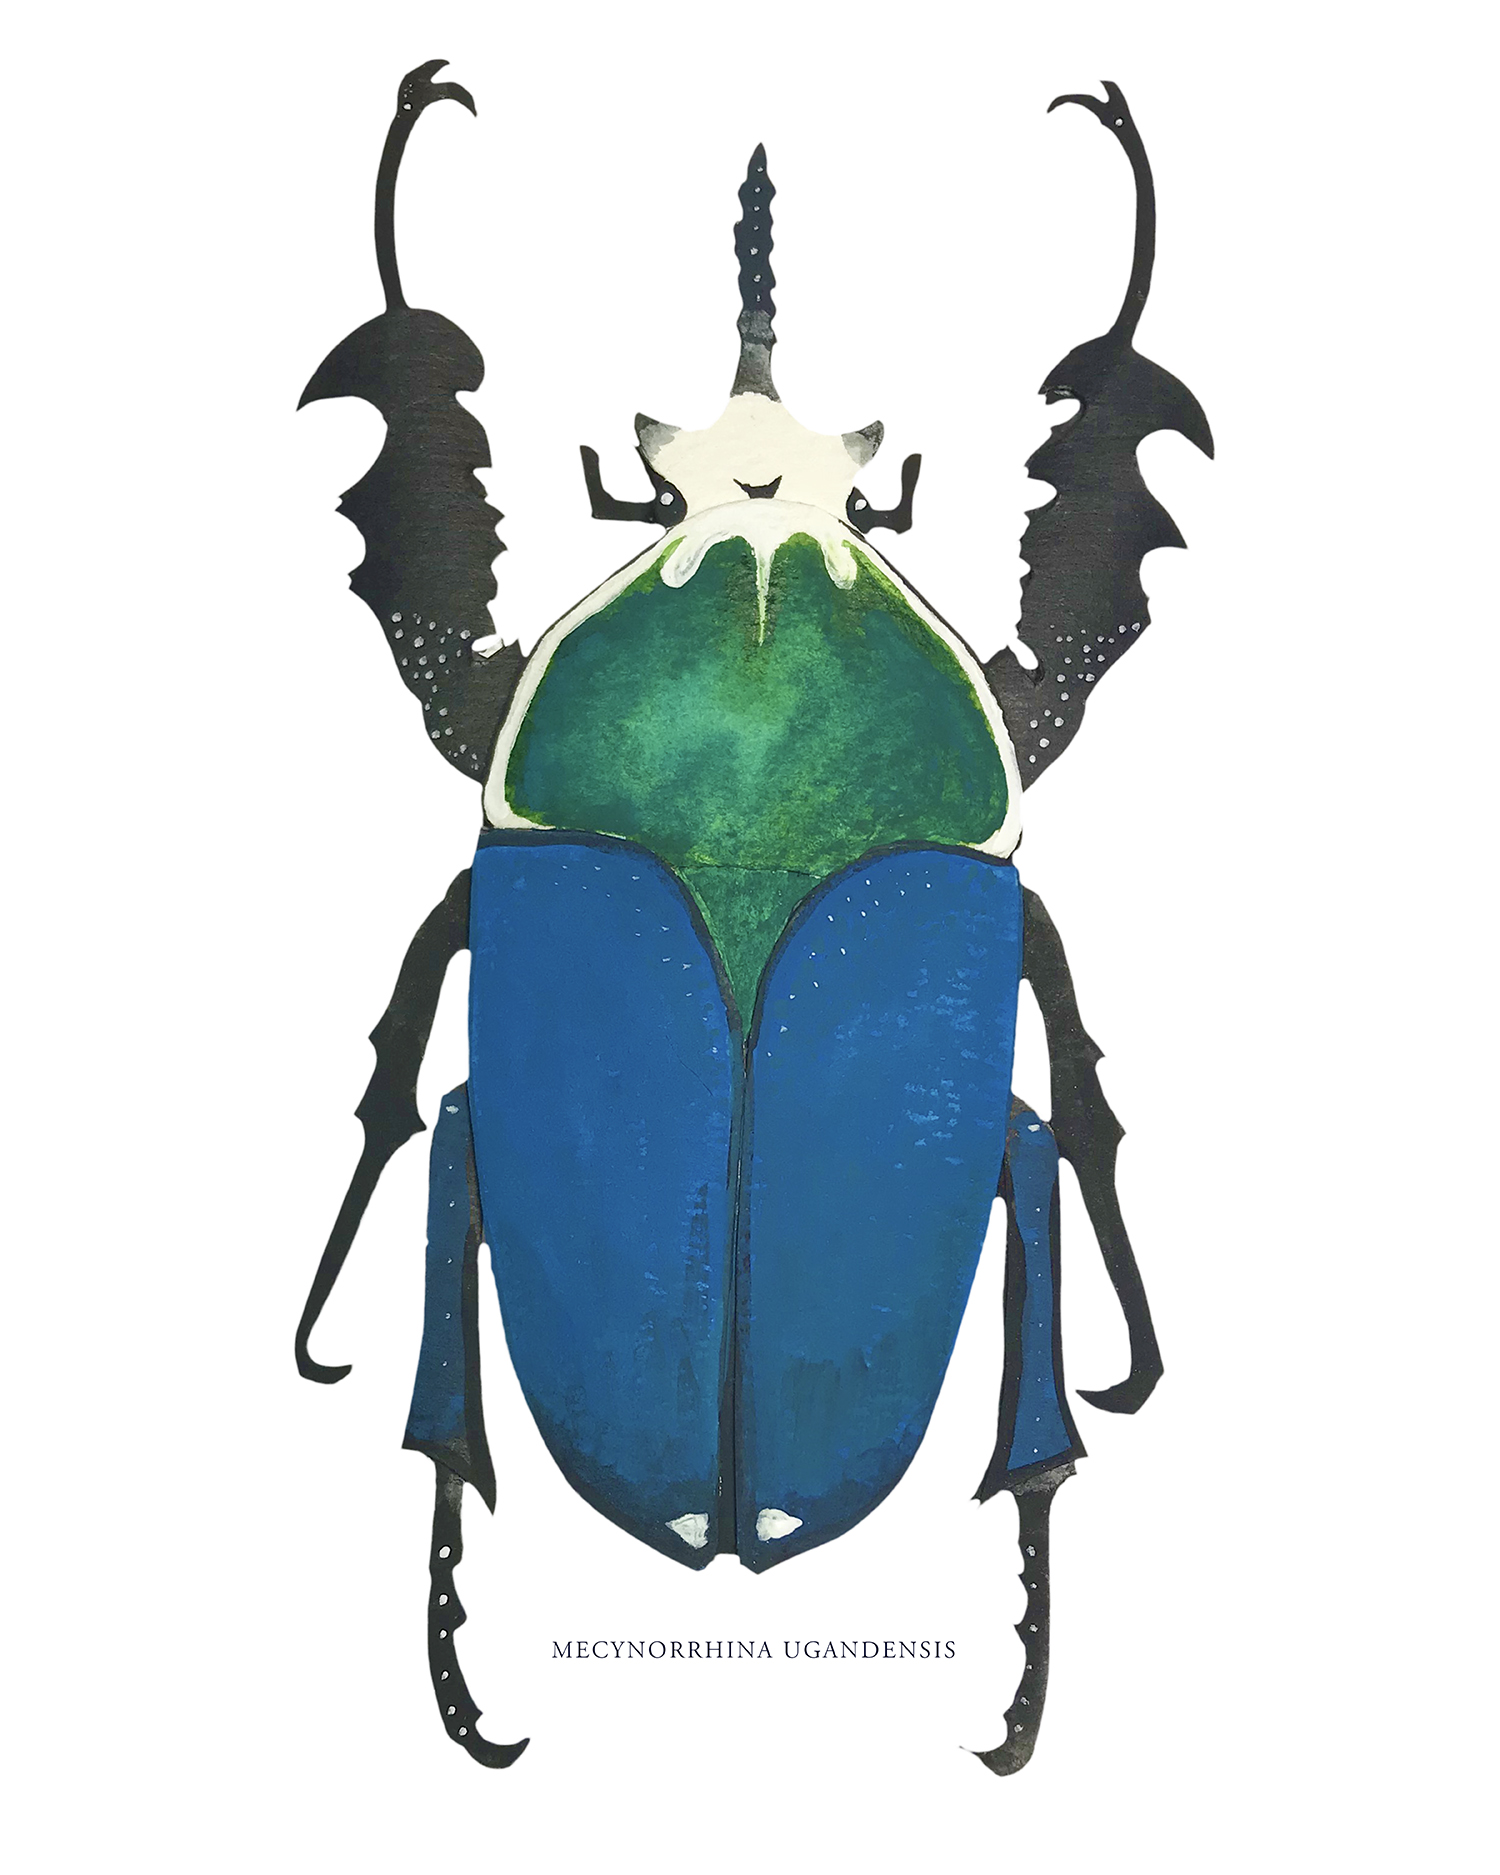 Its Mysterious Life: An Appreciation of Beetles